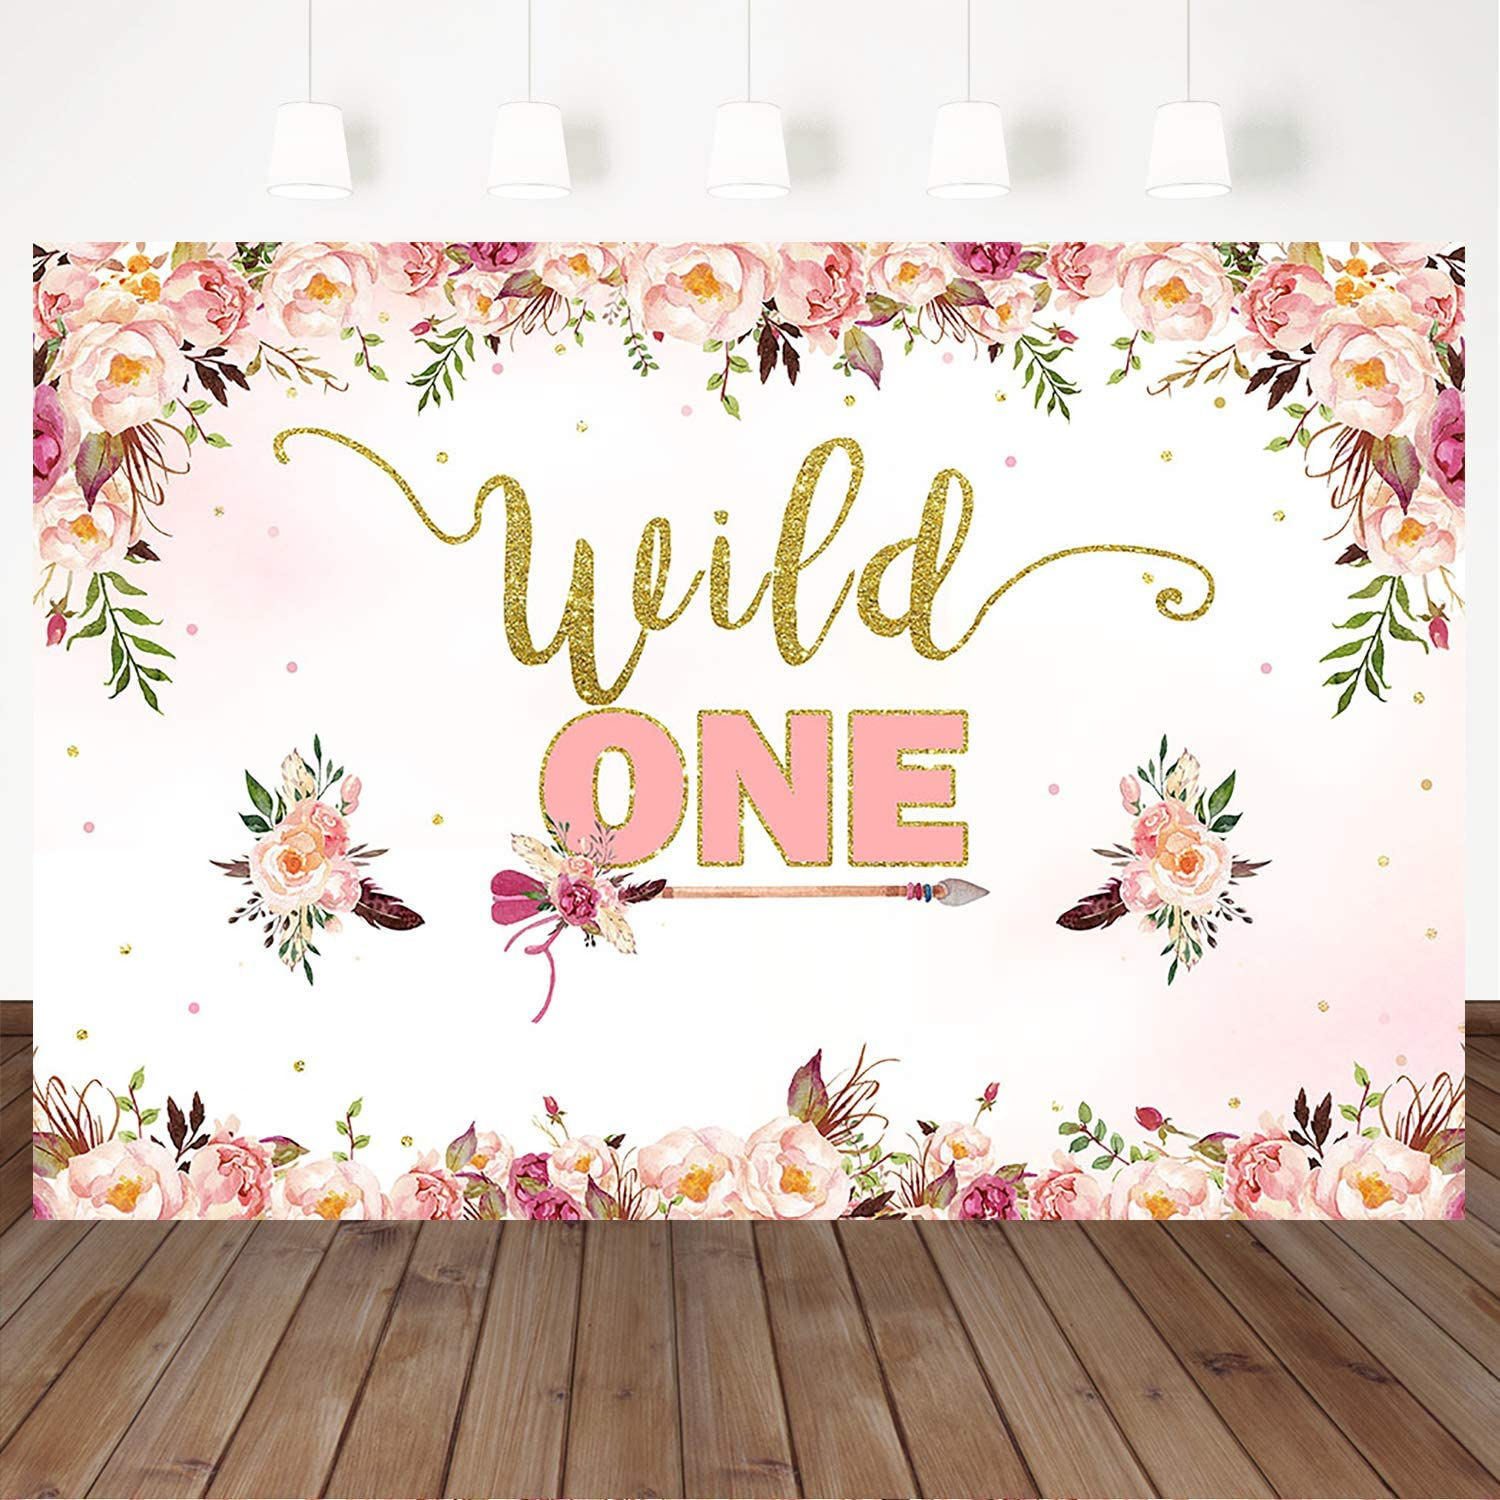 amazon com mocsicka wild one backdrop bohemian arrows girl s first birthday background 7 5ft vinyl pink floral 1st birthday party decoration photography background camera photo mocsicka wild one backdrop bohemian arrows girl s first birthday background 7 5ft vinyl pink floral 1st birthday party decoration photography